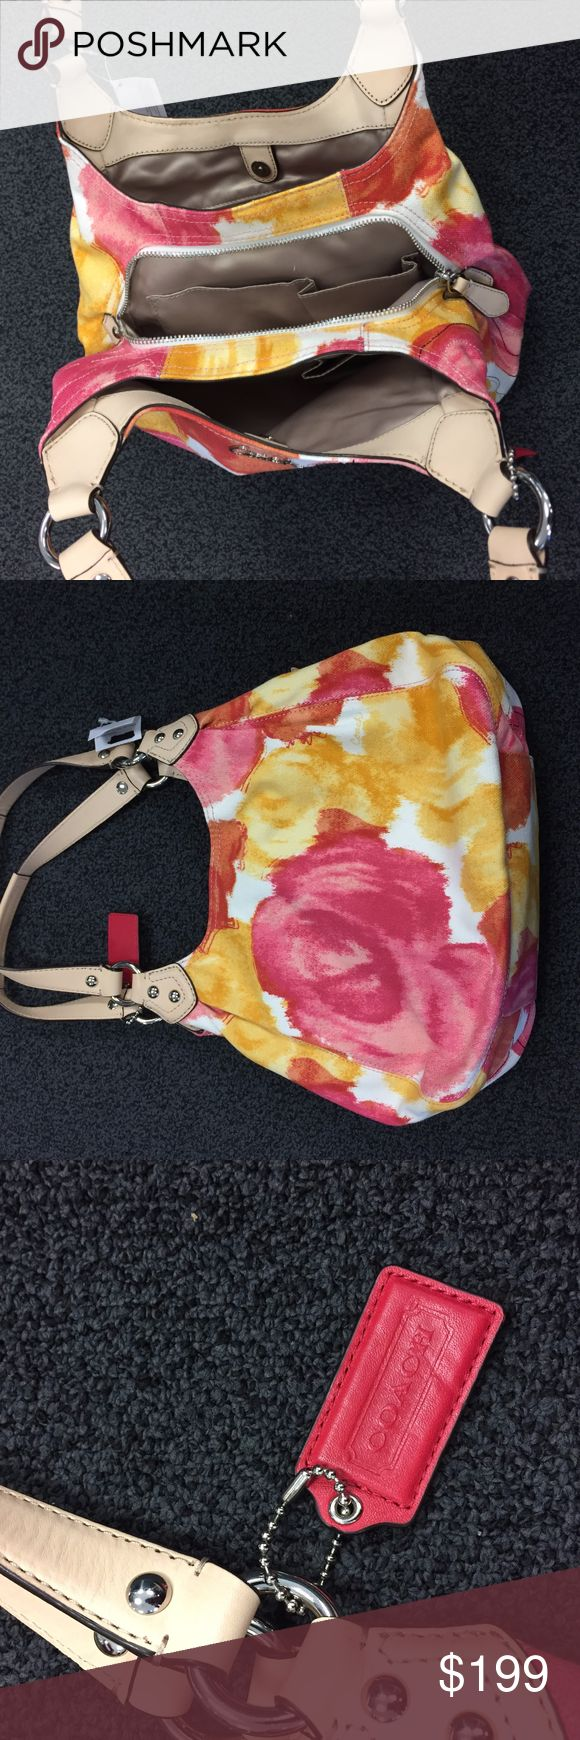 Coach Ashley Floral Print Hobo Bag Beautiful, authentic Coach hobo bag with one-of-a-kind floral print.  New with tags, never been used. There is a slight scuff on the bottom of one of the handles (see last photo). Coach Bags Hobos